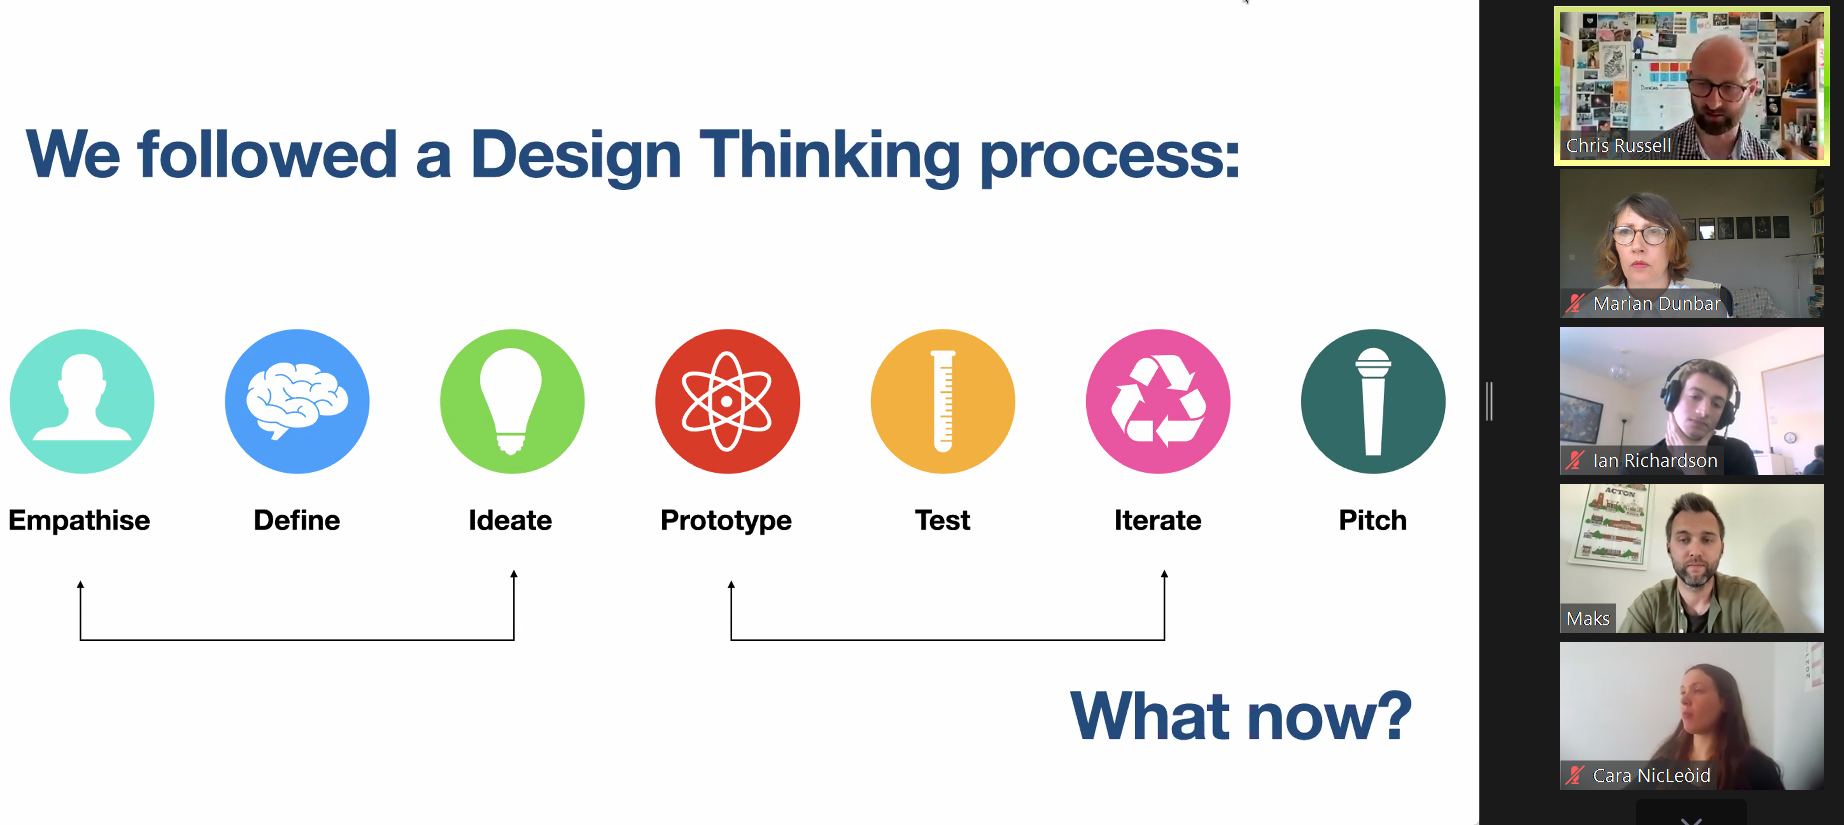 Diagram showing design thinking process